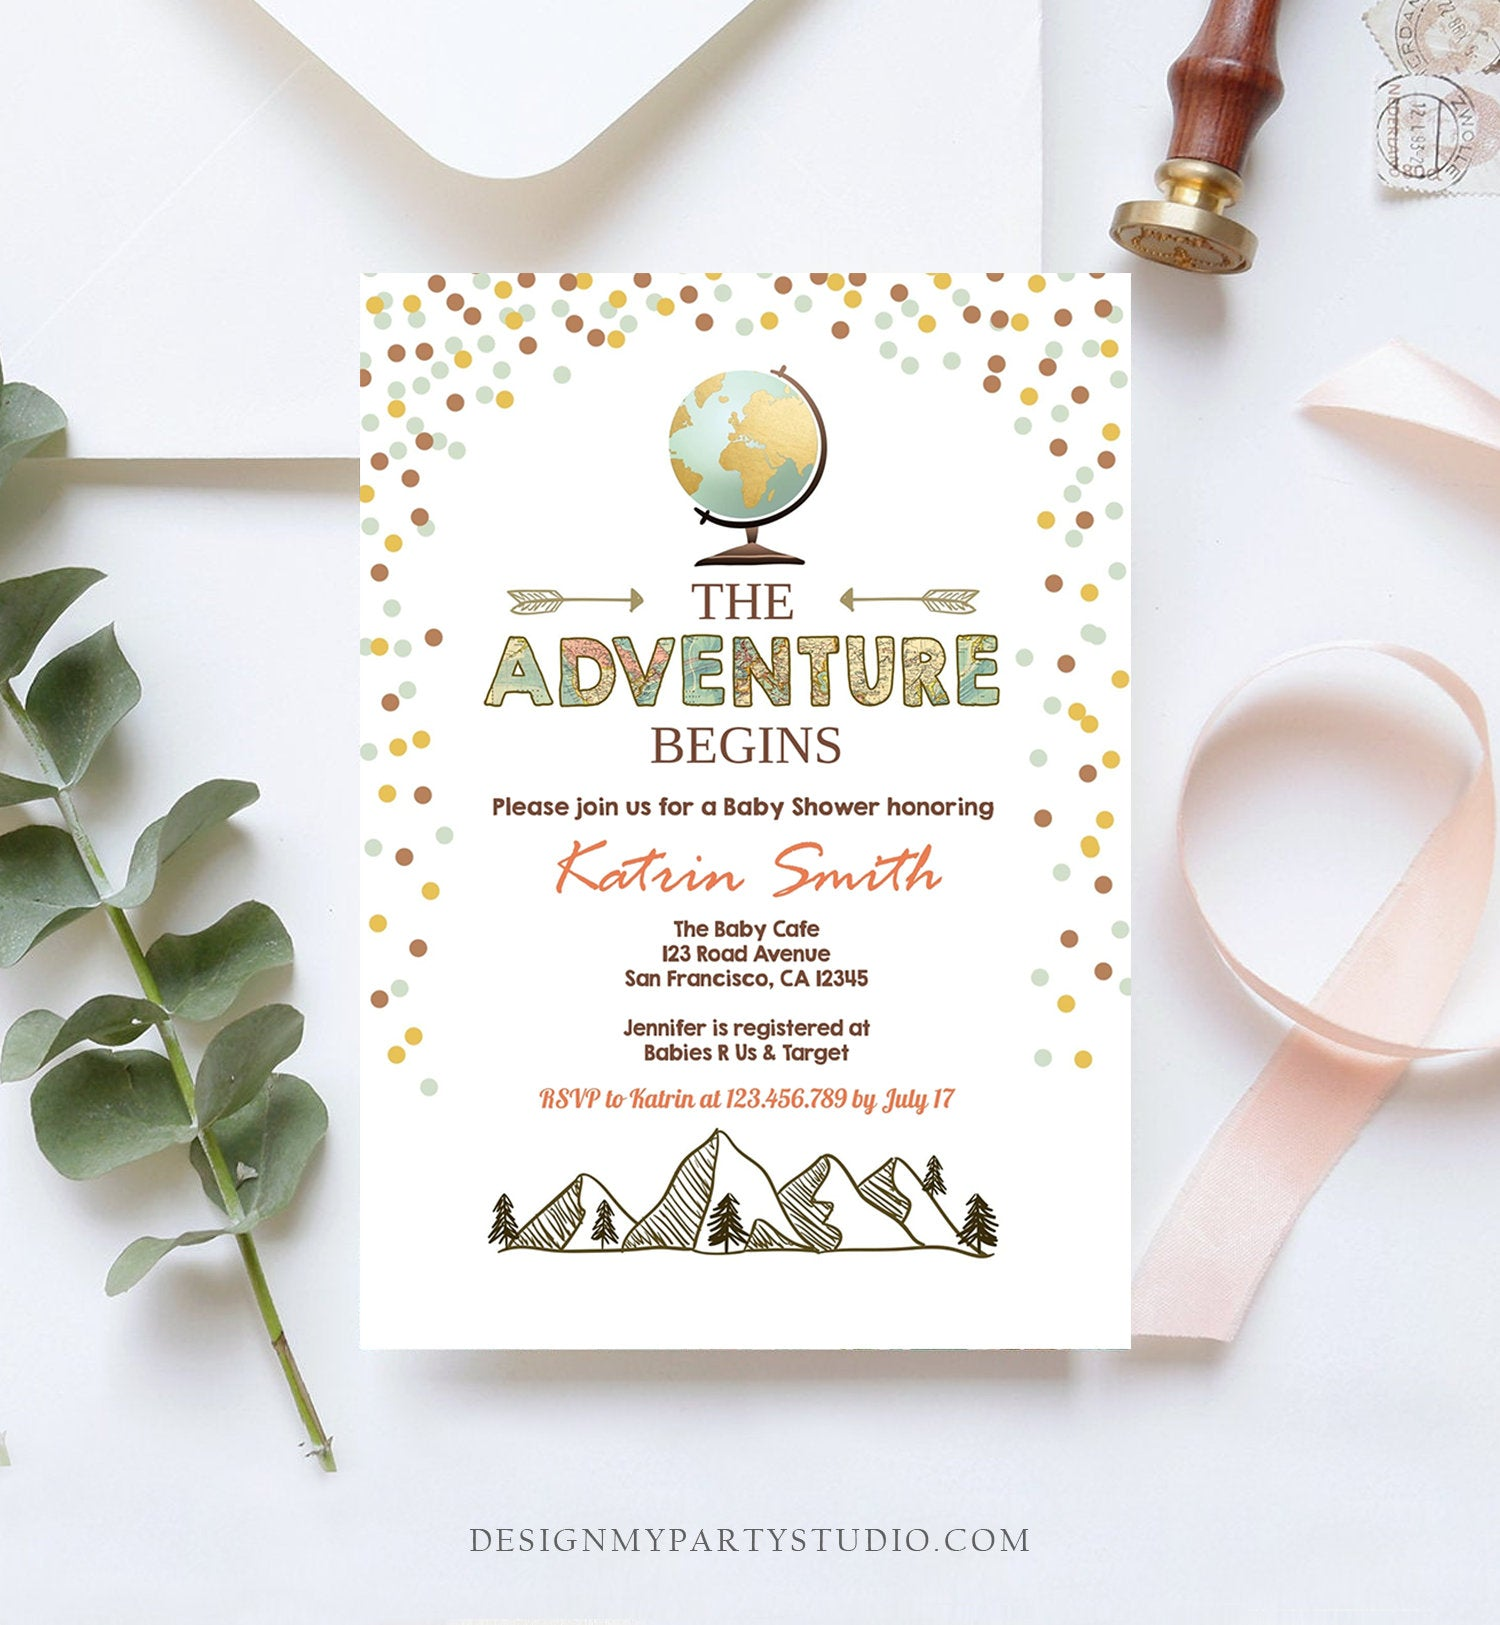 Editable Adventure Begins Baby Shower Invitation Forest Mountains Vintage Globe Travel Around World Digital Corjl Template Printable 0044